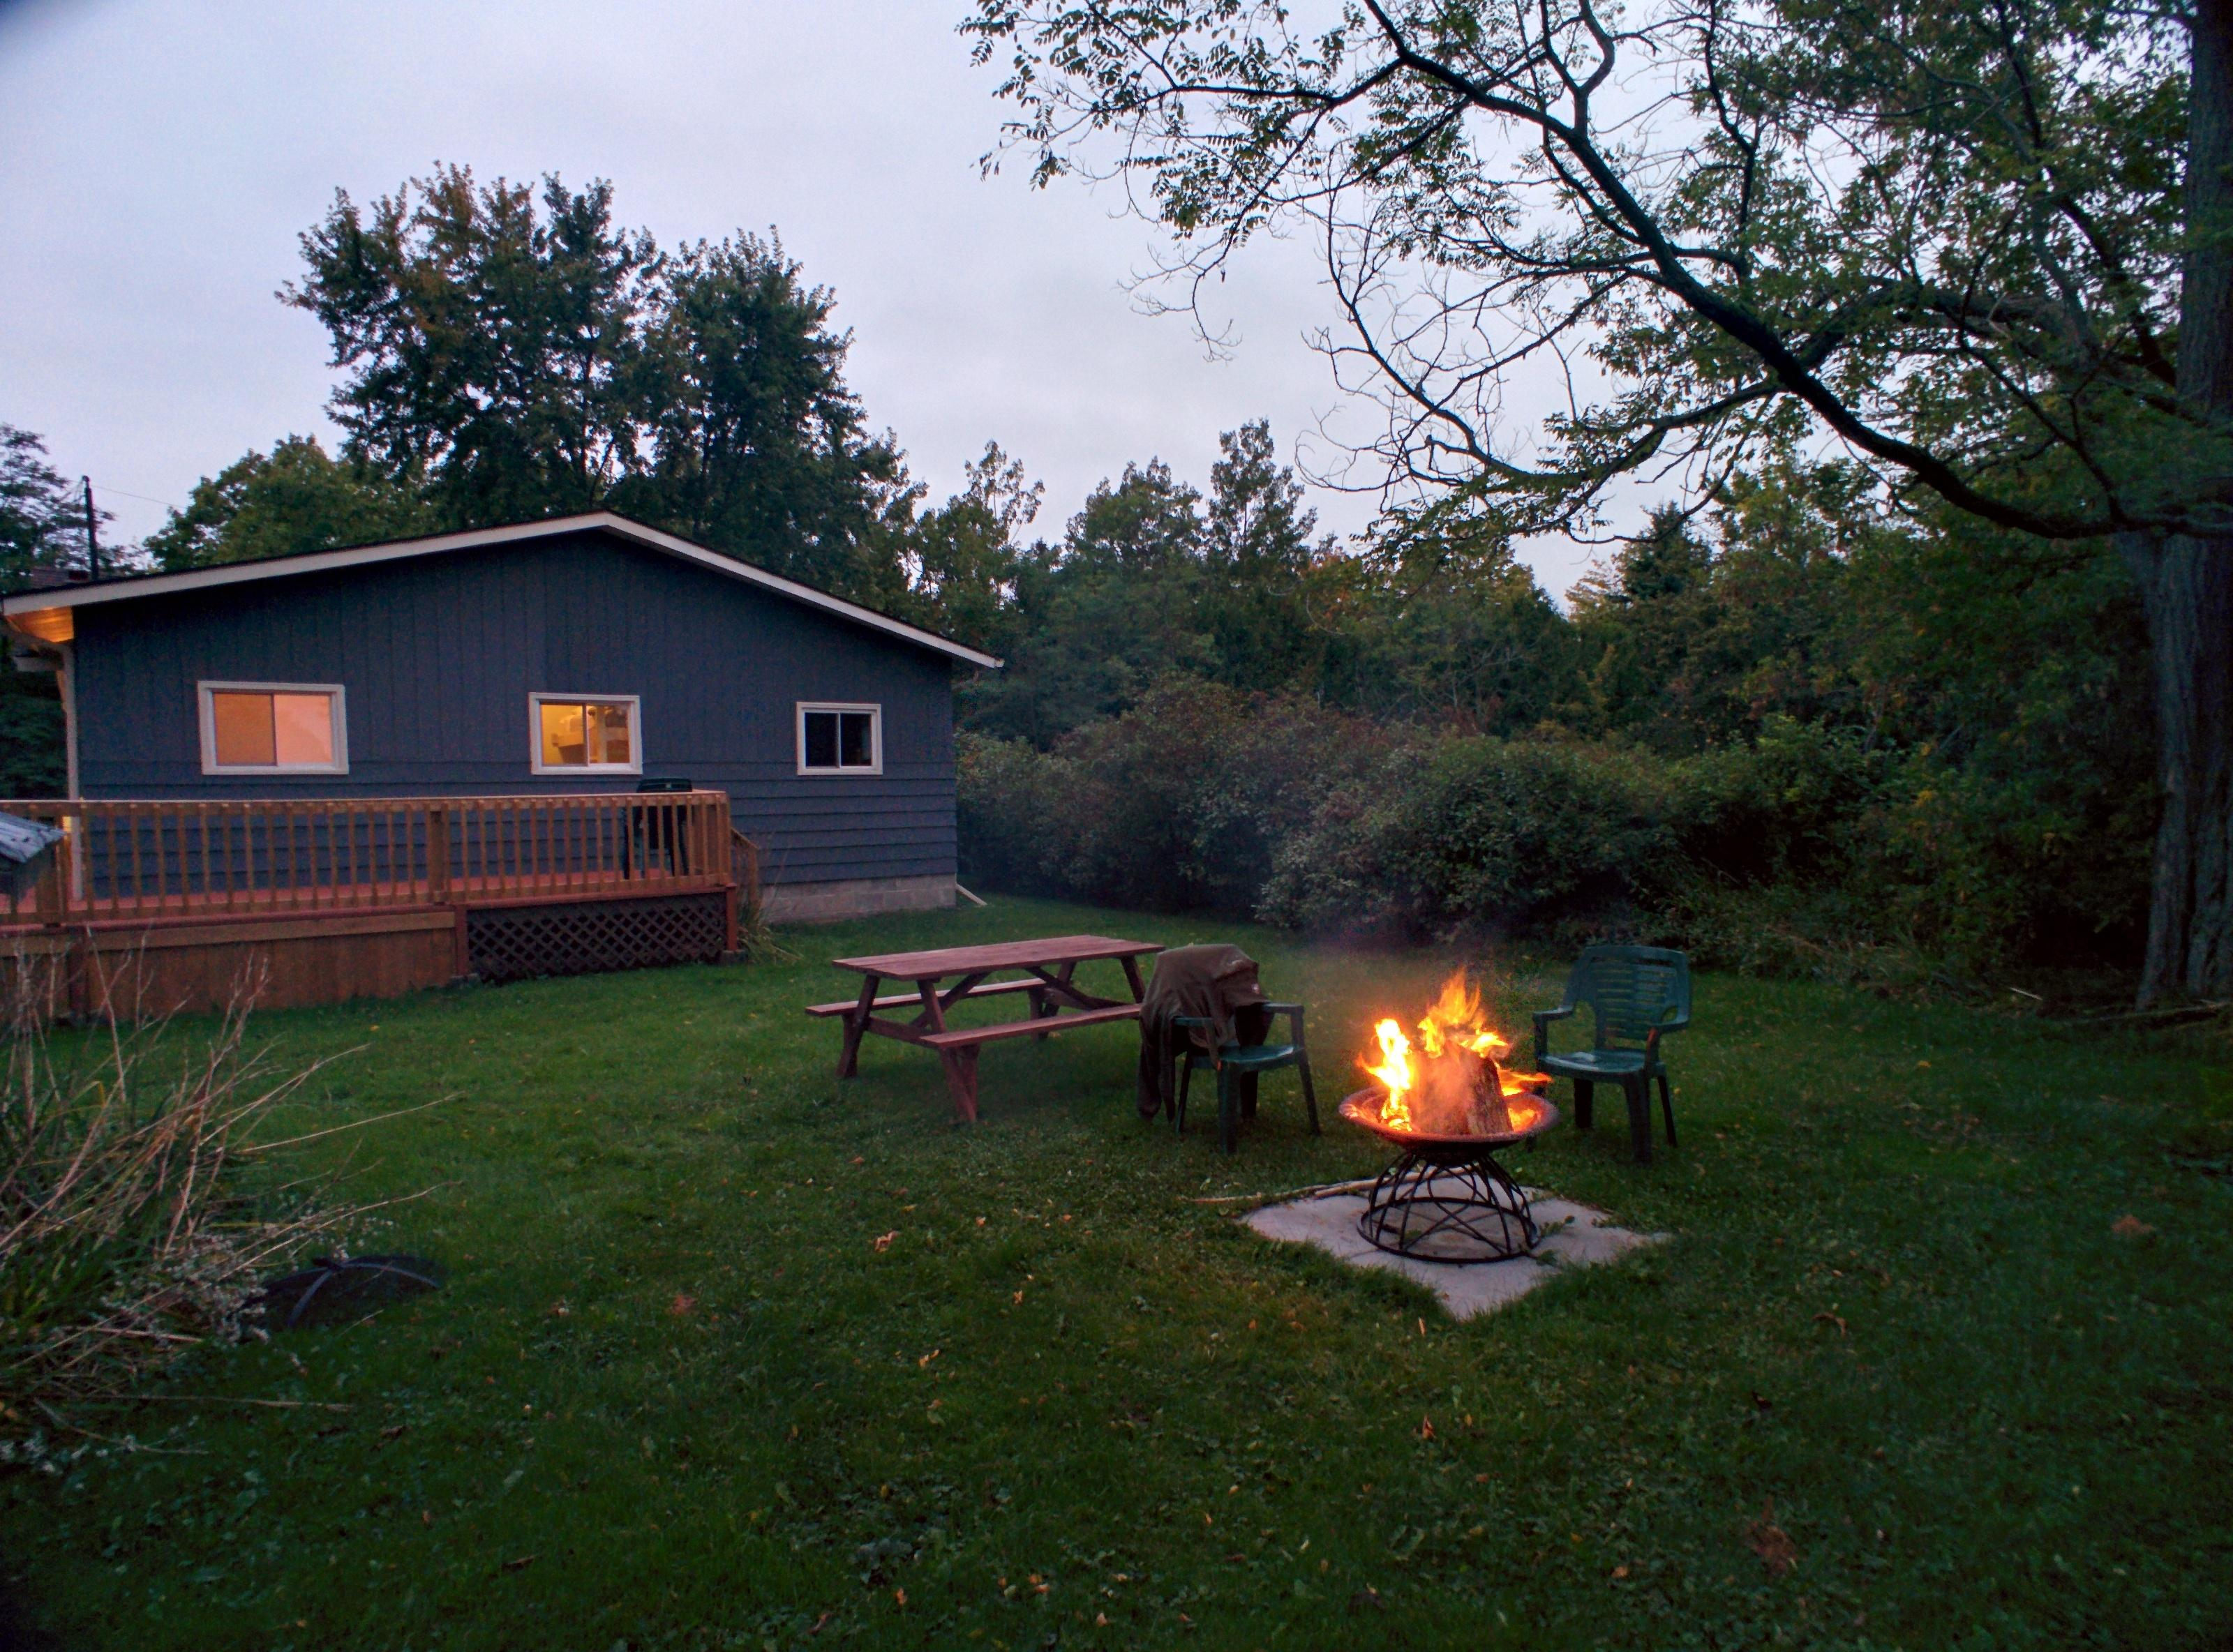 Marshmallow roasts and fireside conversation